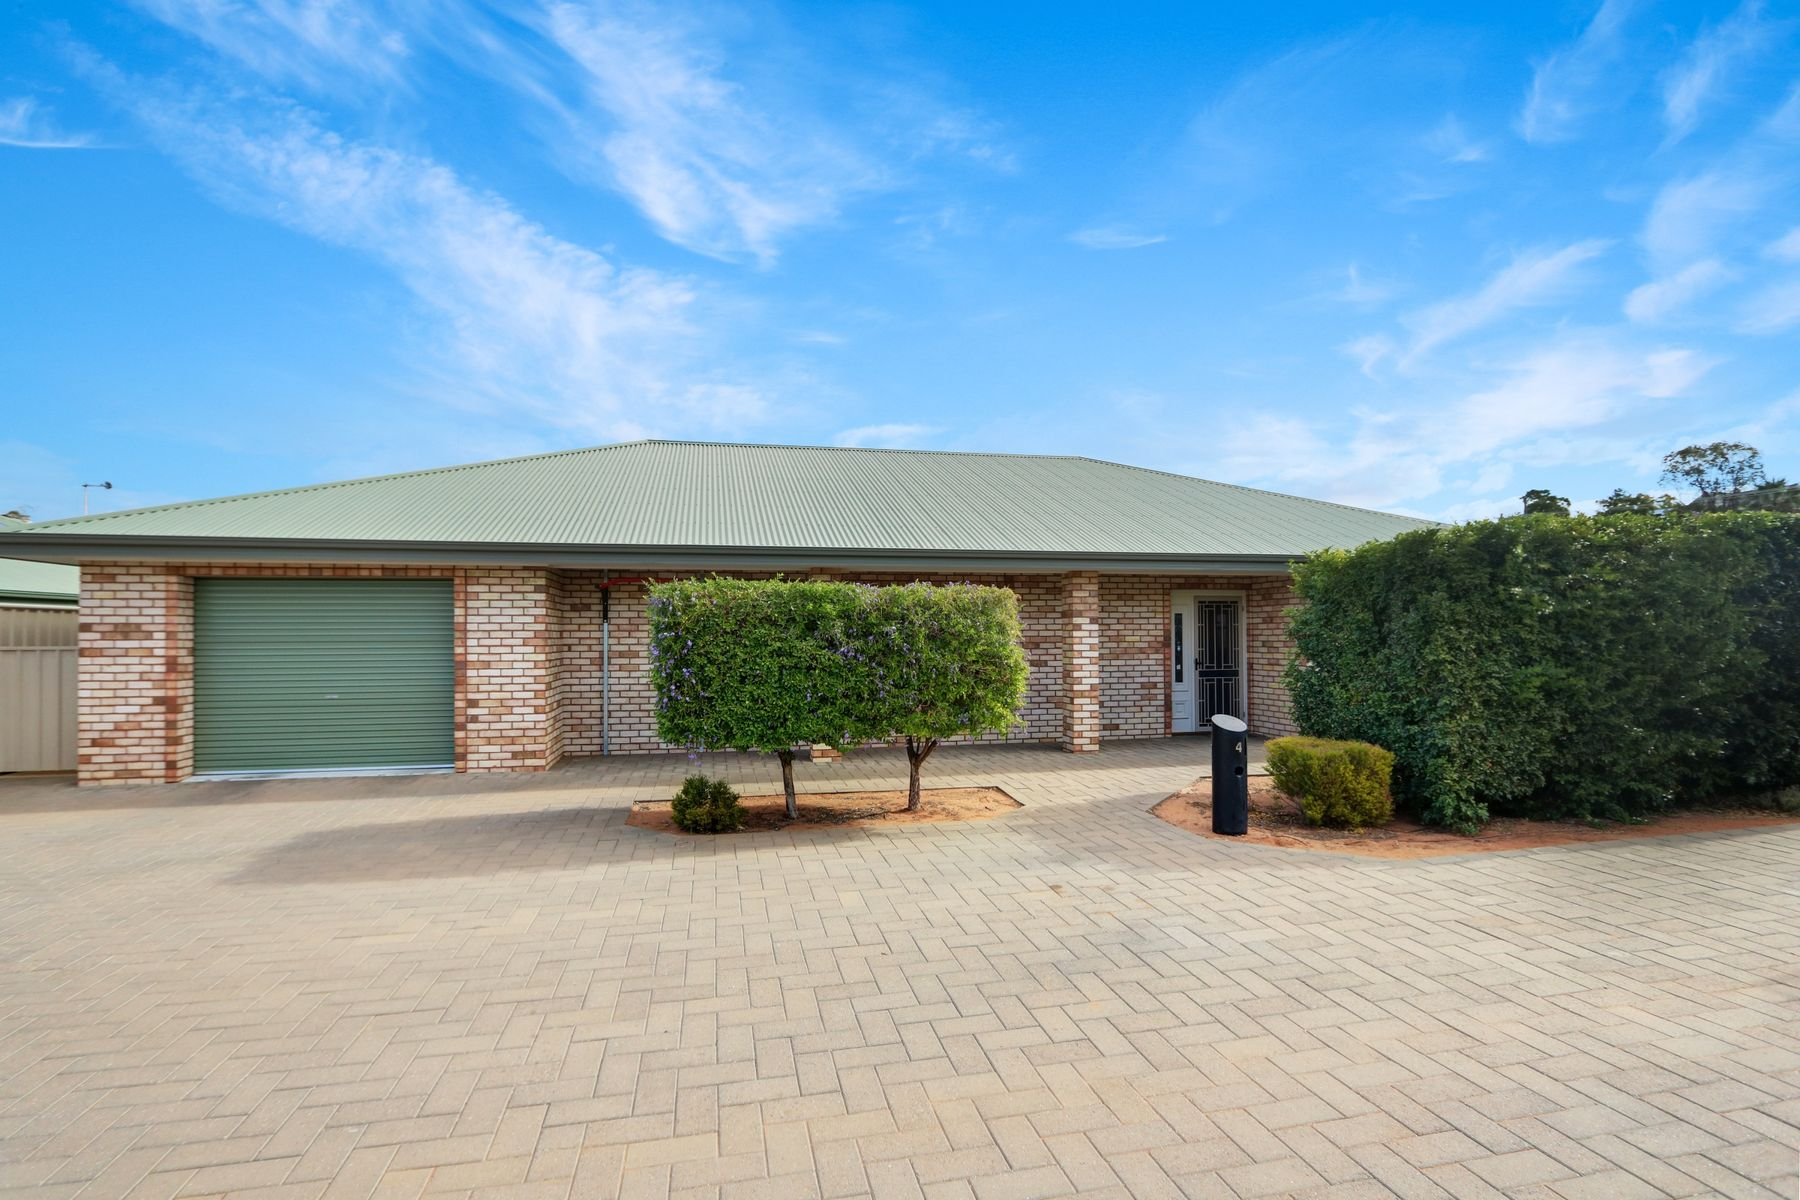 House 4/175 Cummins Street, Broken Hill, NSW 2880